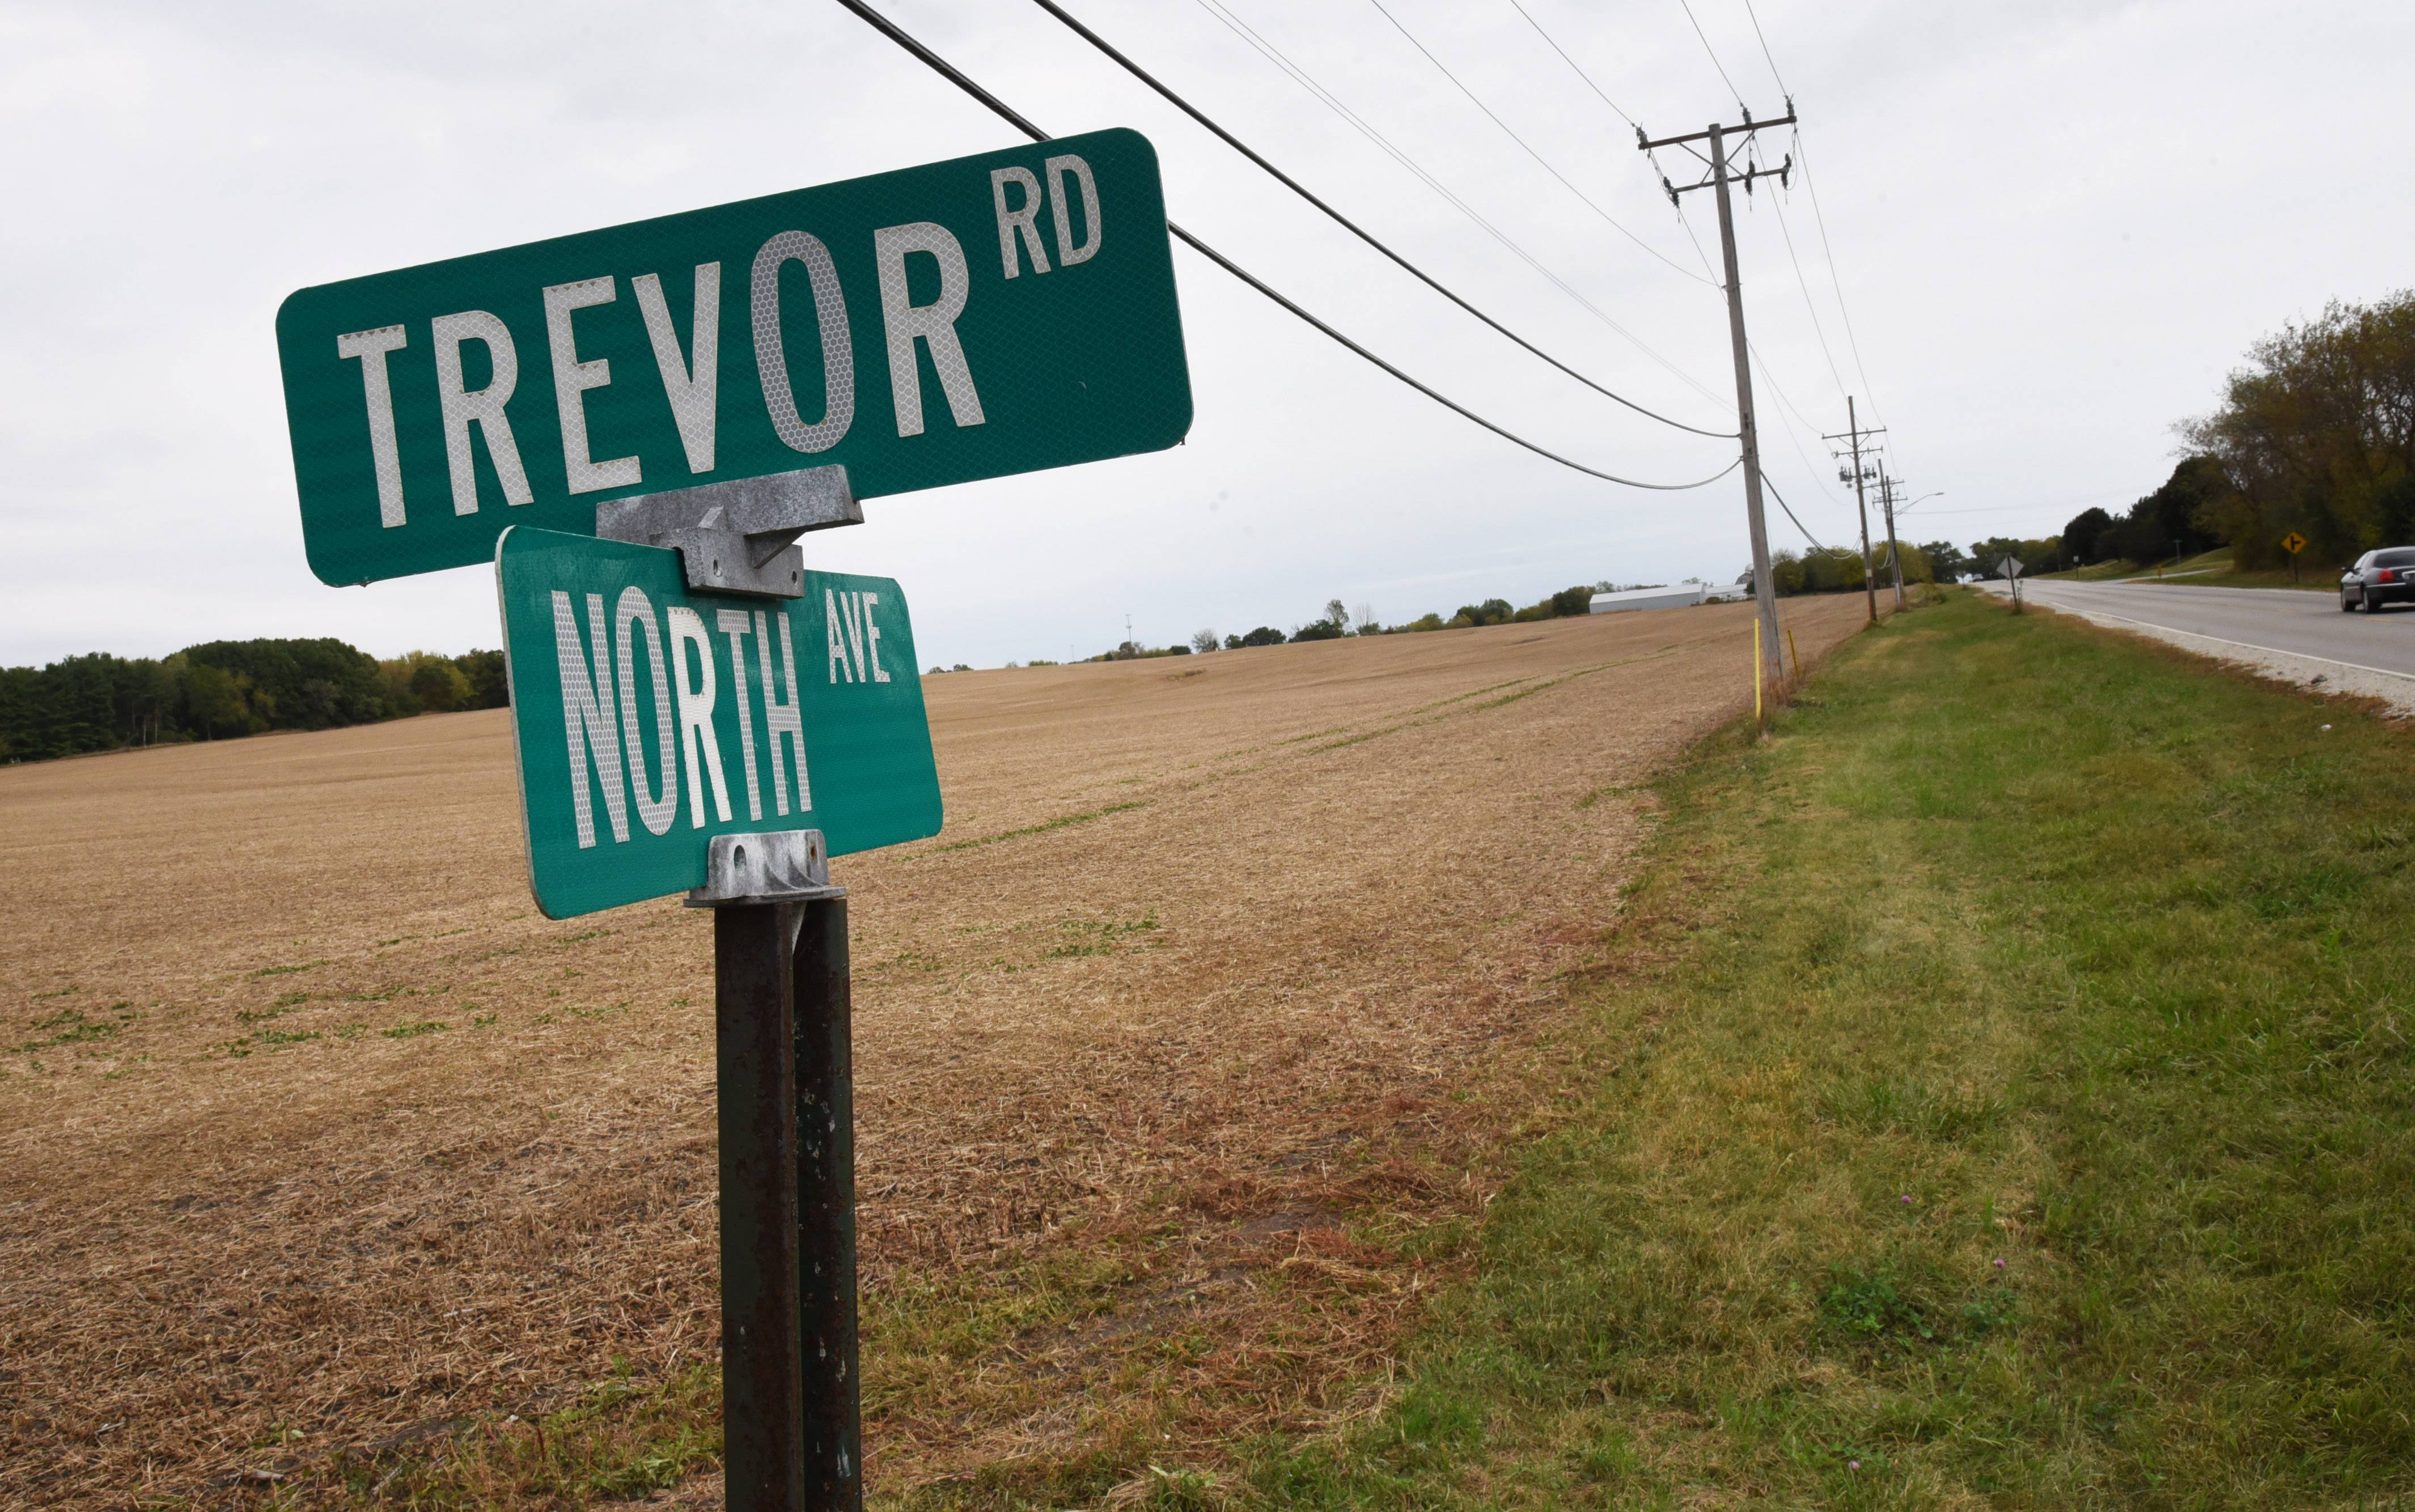 A significant step in what could be the first new large residential development in Antioch in many years has been taken with the pending annexation of 71 acres at North Avenue and Trevor Road.